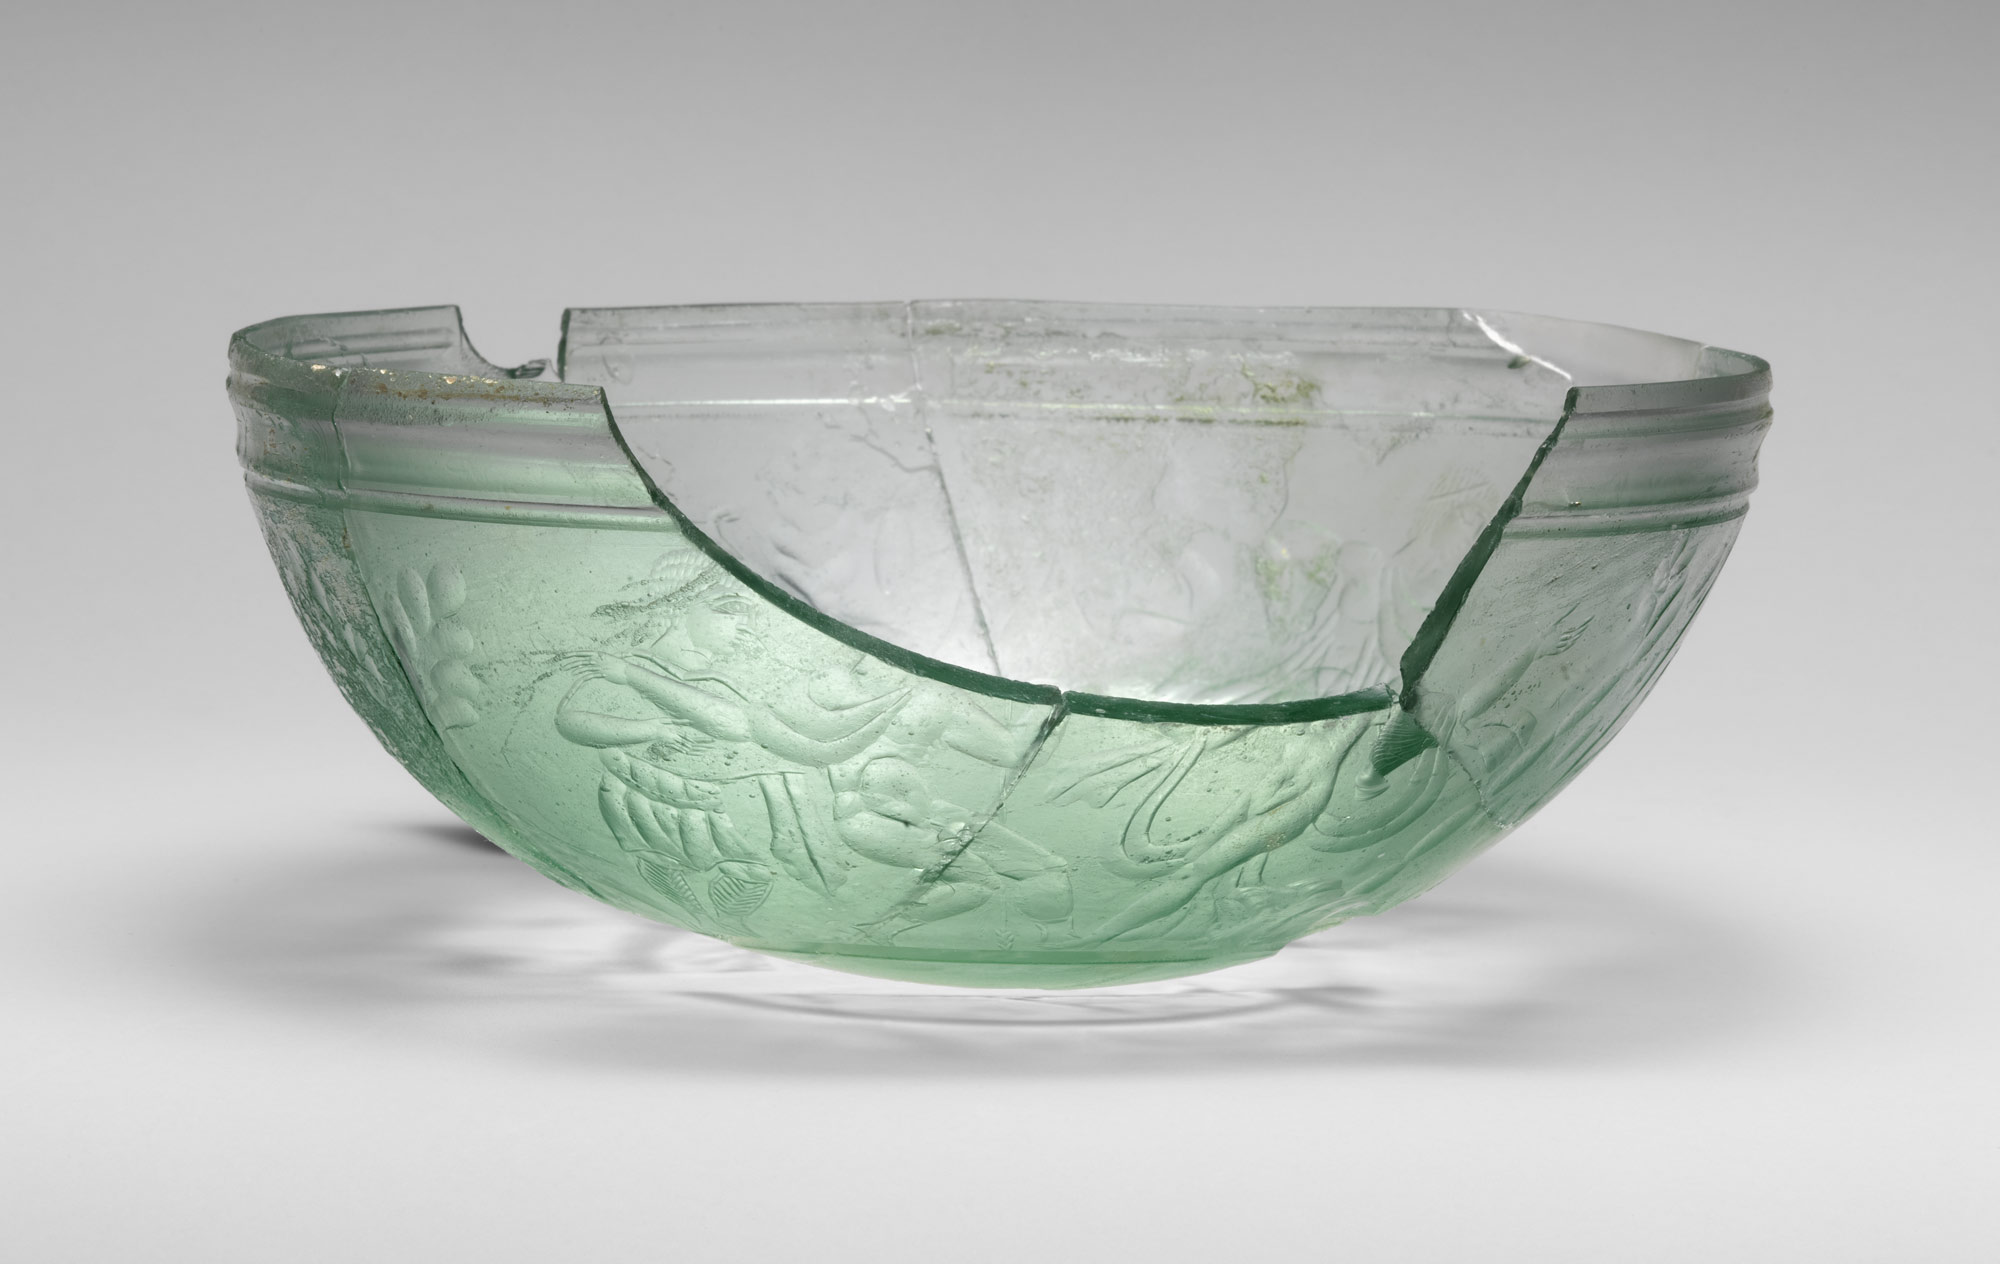 Glass bowl decorated with hunting scenes